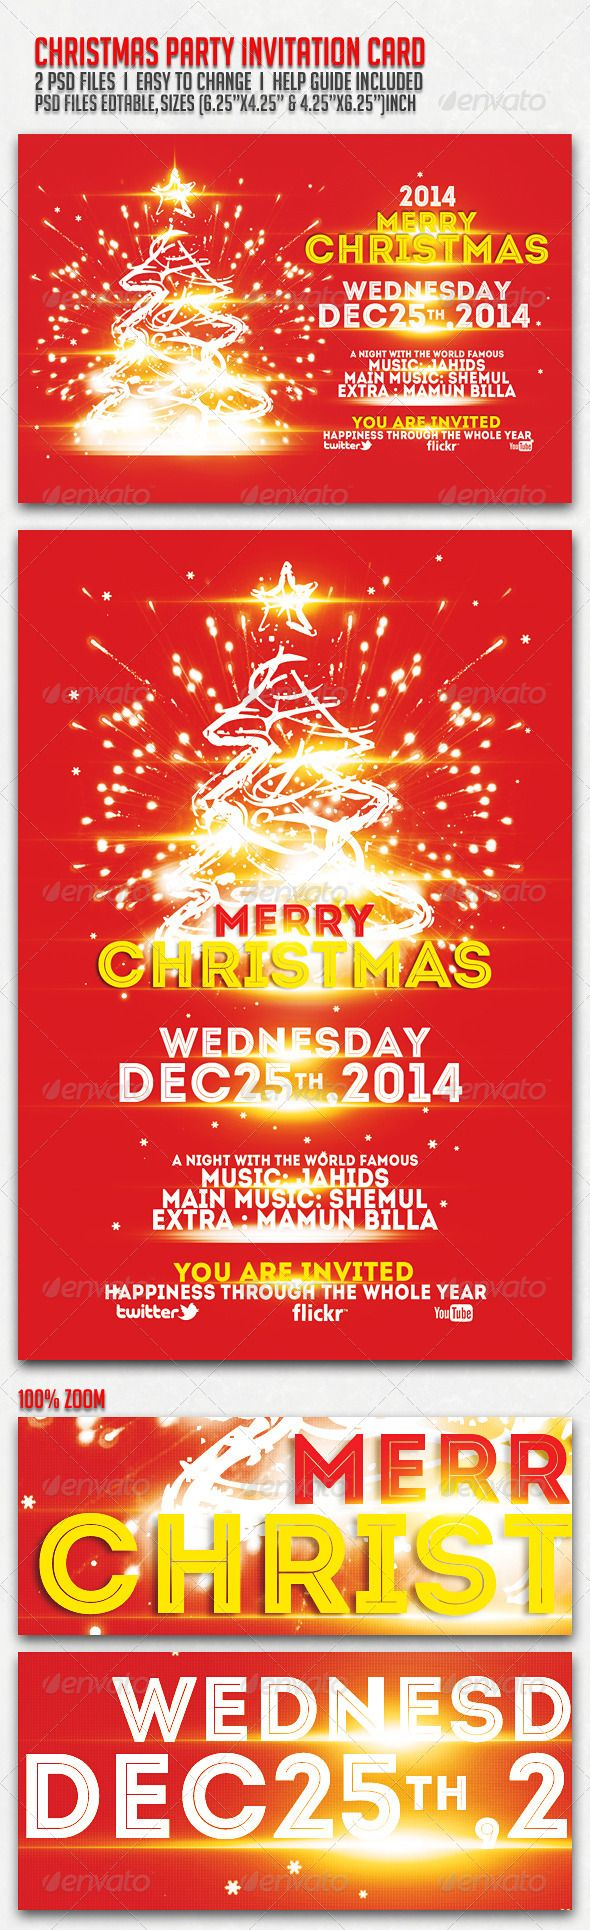 17 best images about mom christmas parties christmas party invitation cards flyer